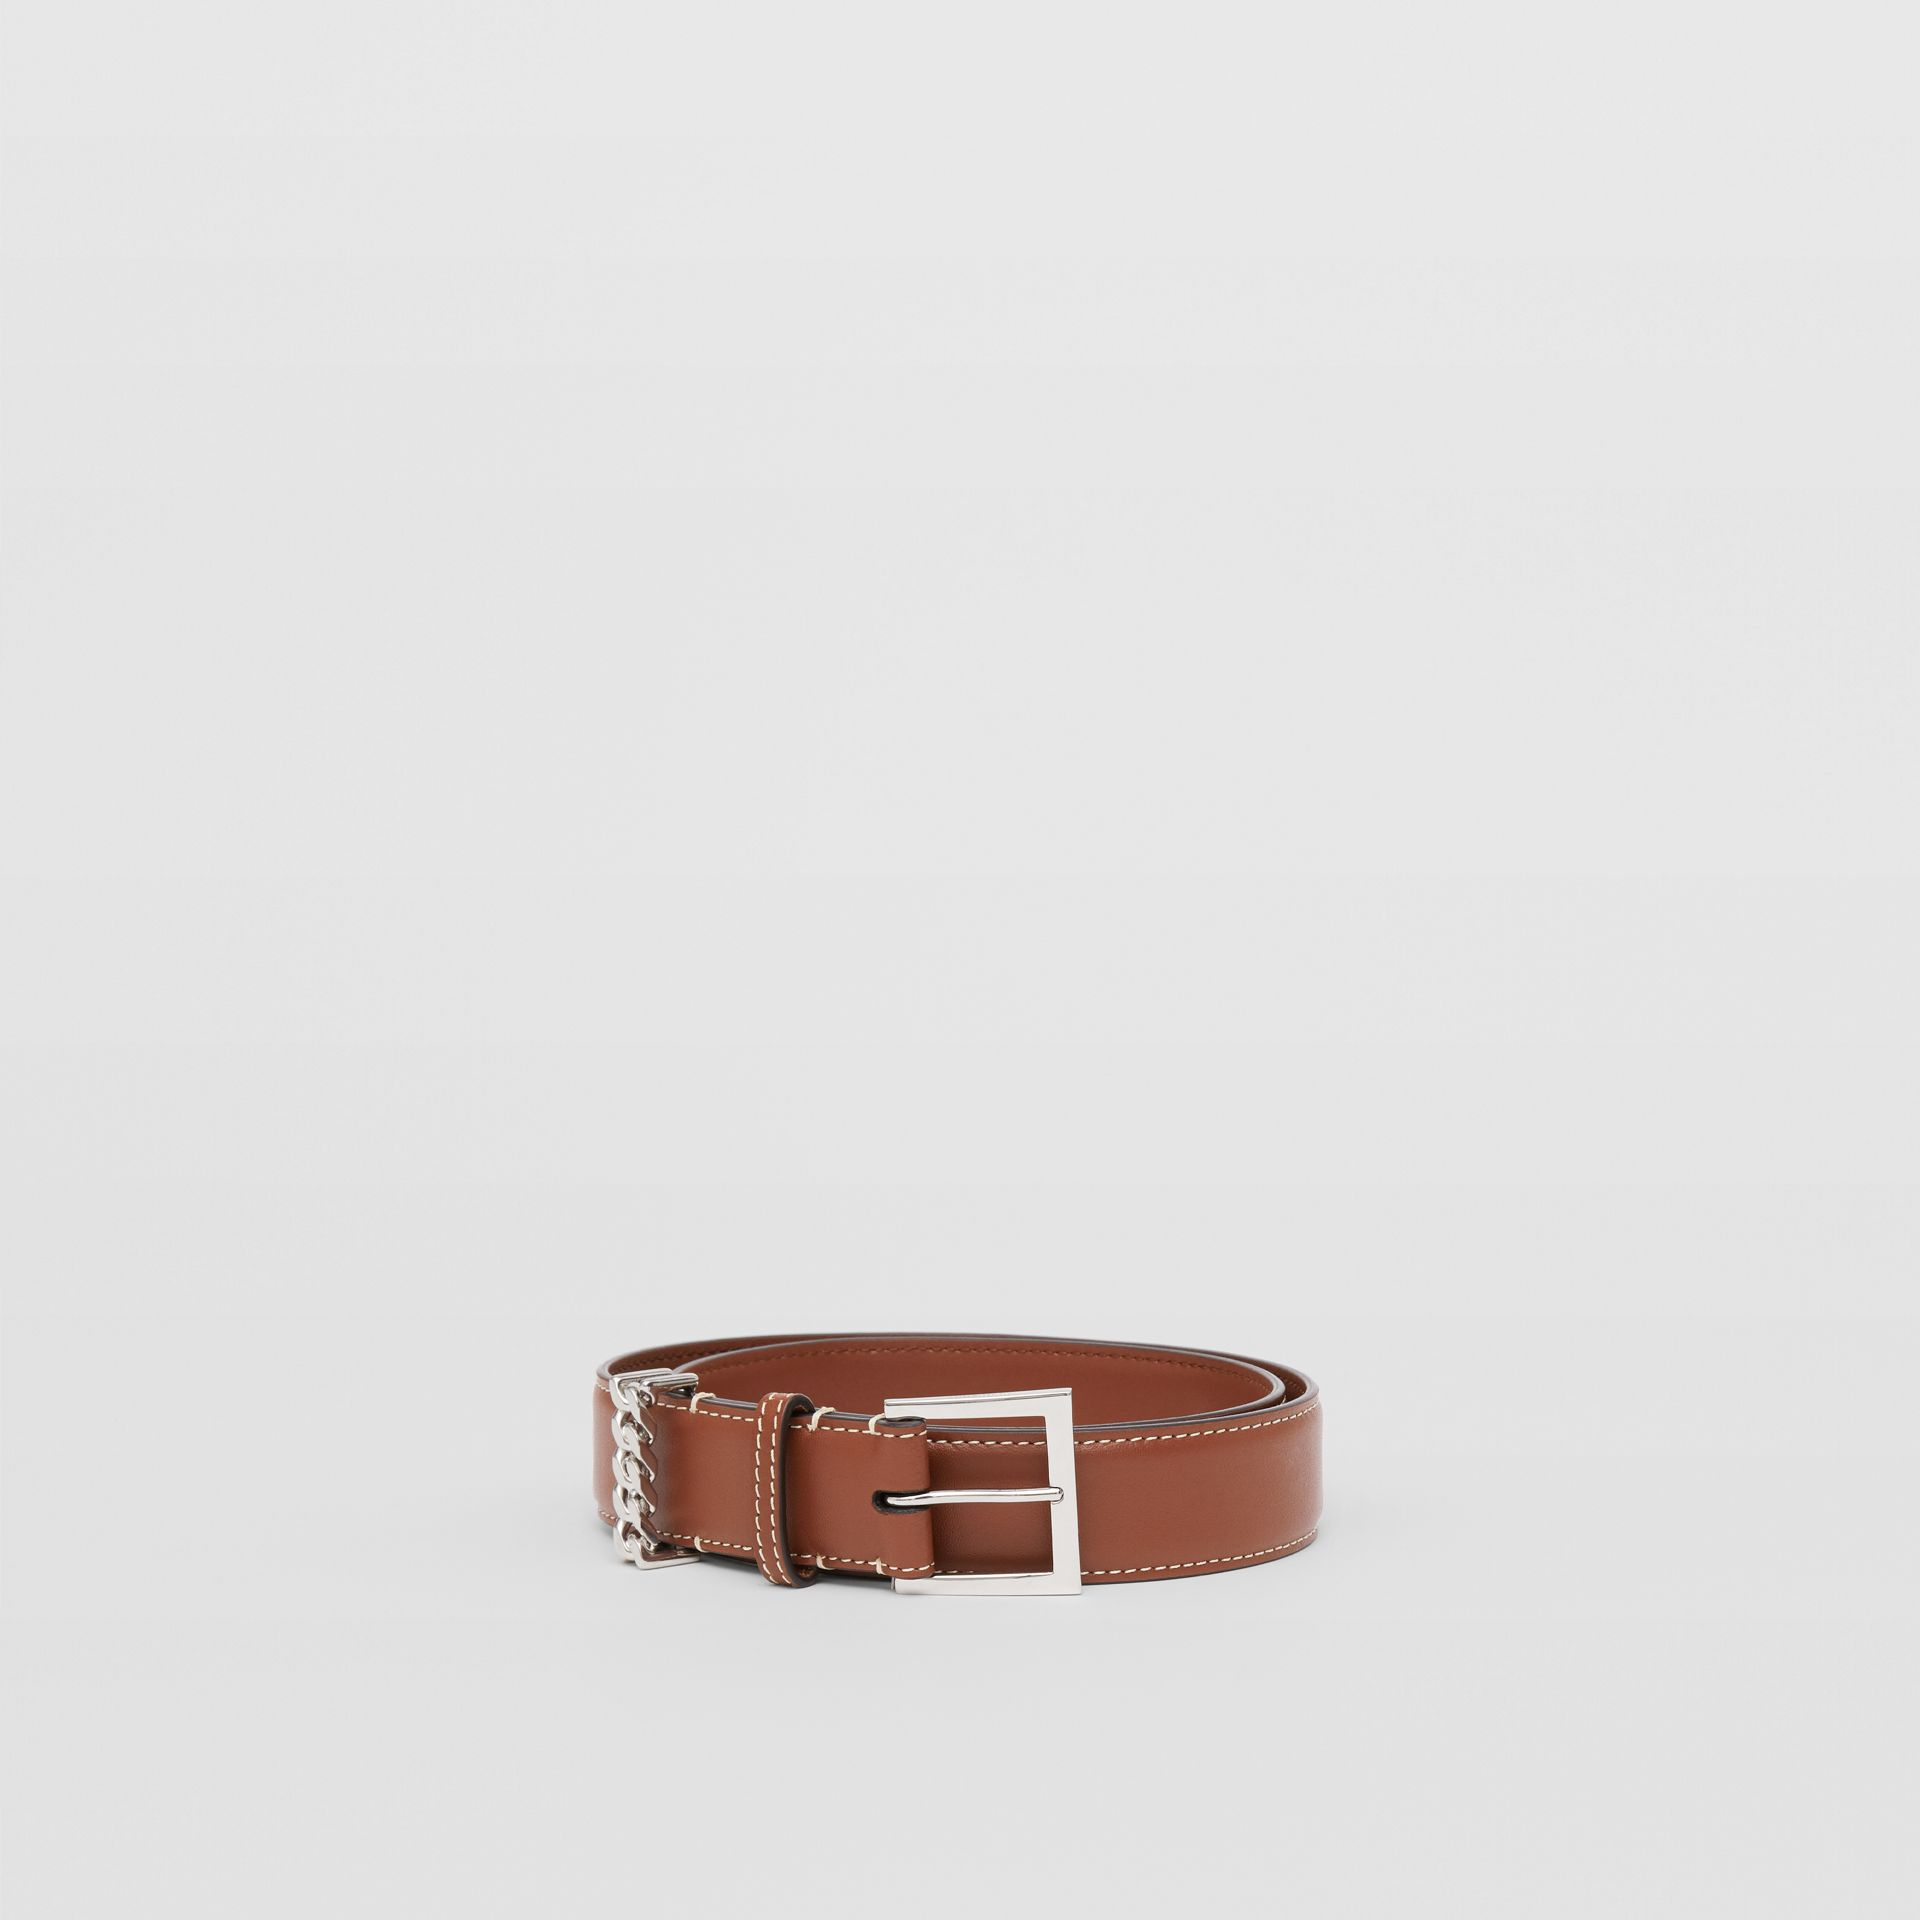 Chain Detail Topstitched Leather Belt in Tan/ecru - Women | Burberry - gallery image 3